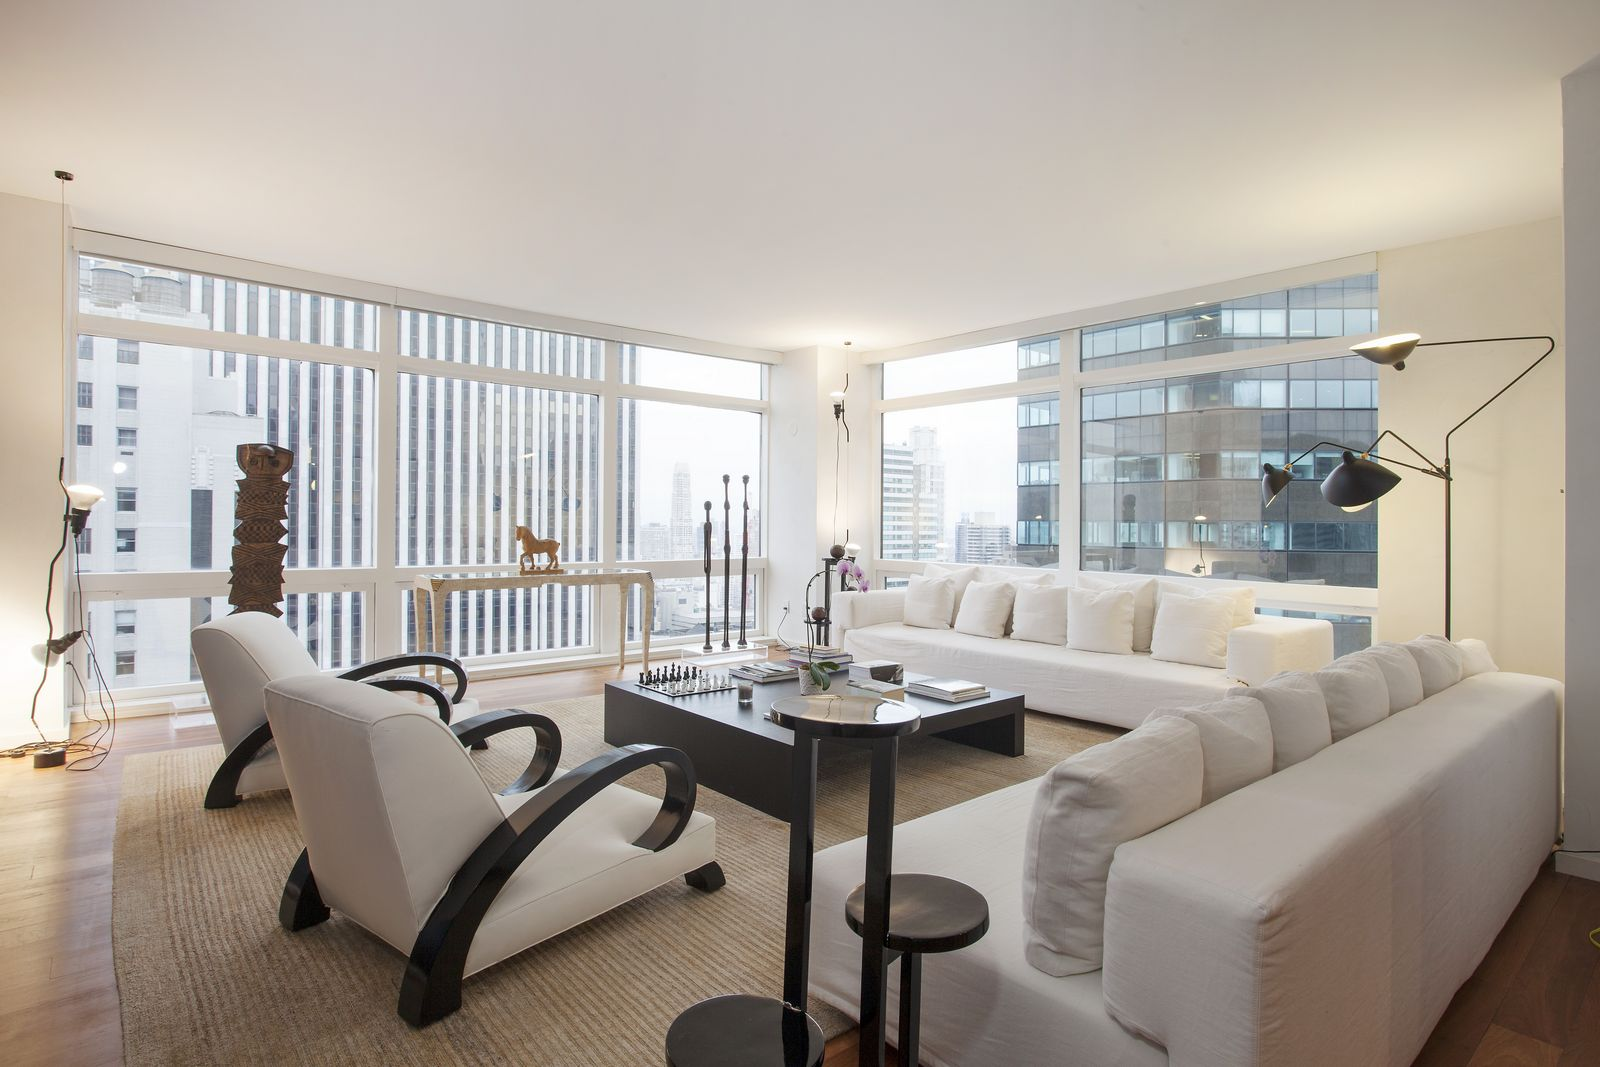 Studio apartments for sale in new york city studio for New york city apartments for sale